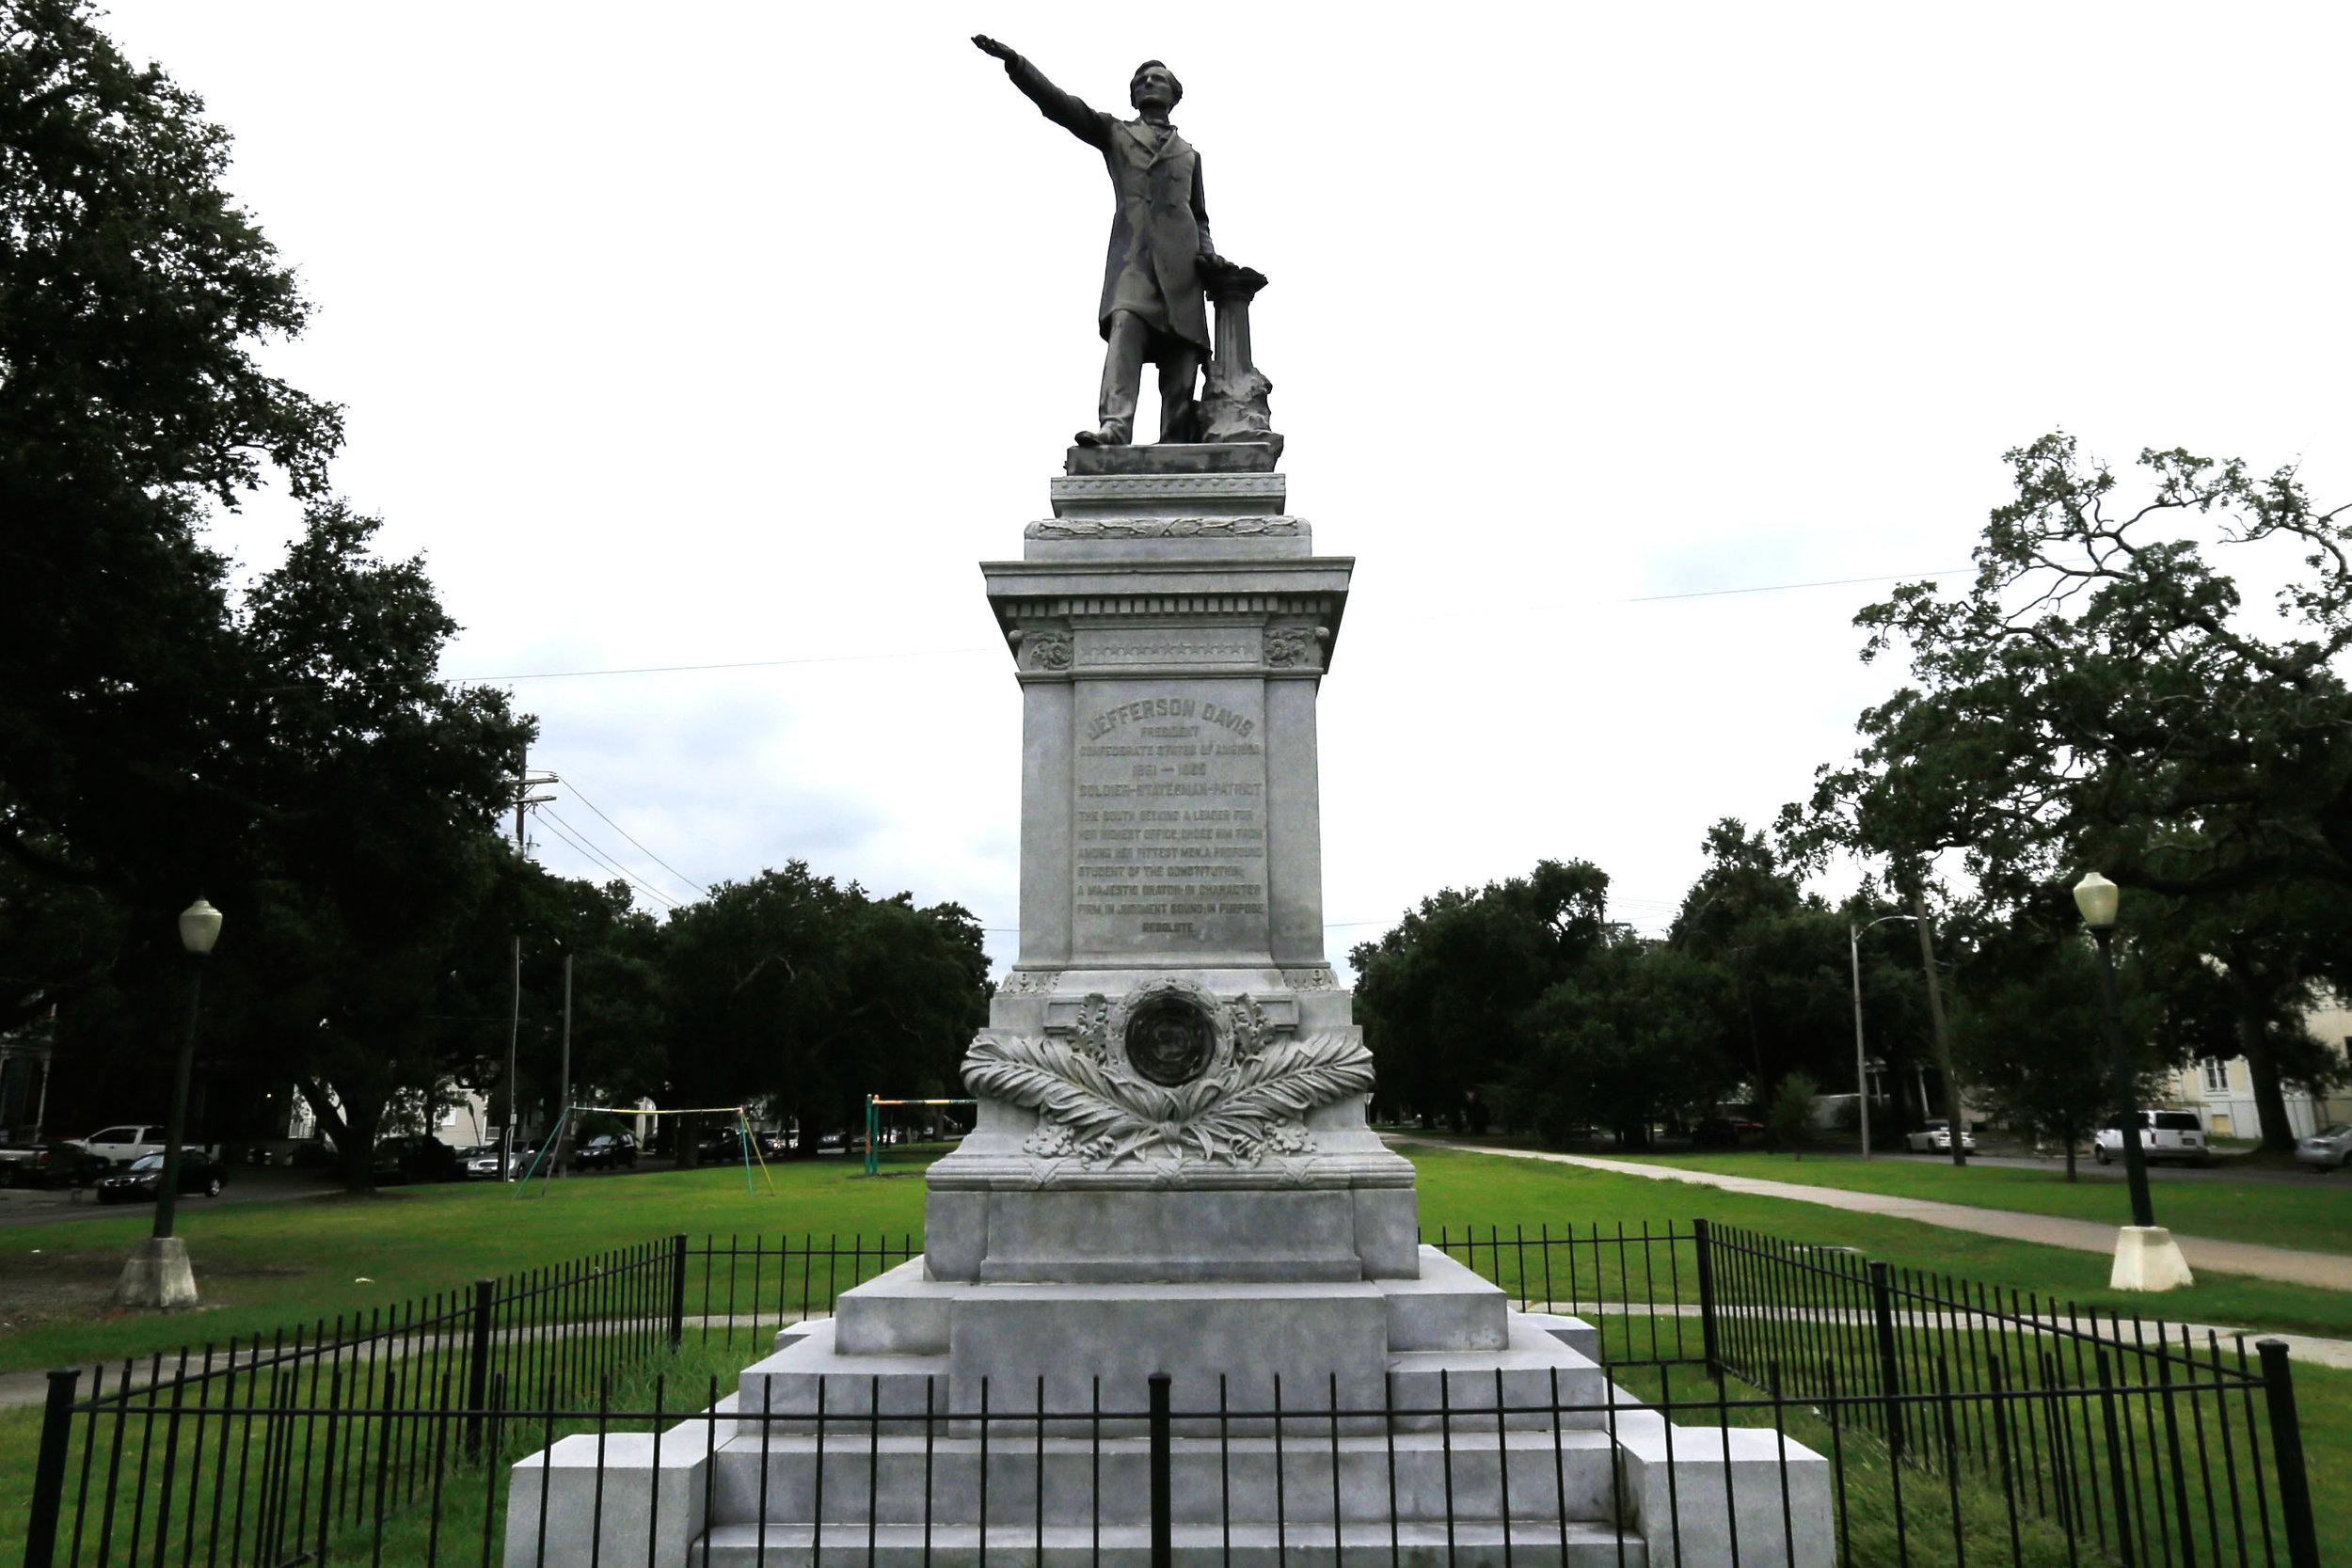 Jefferson Davis monument removed in New Orleans